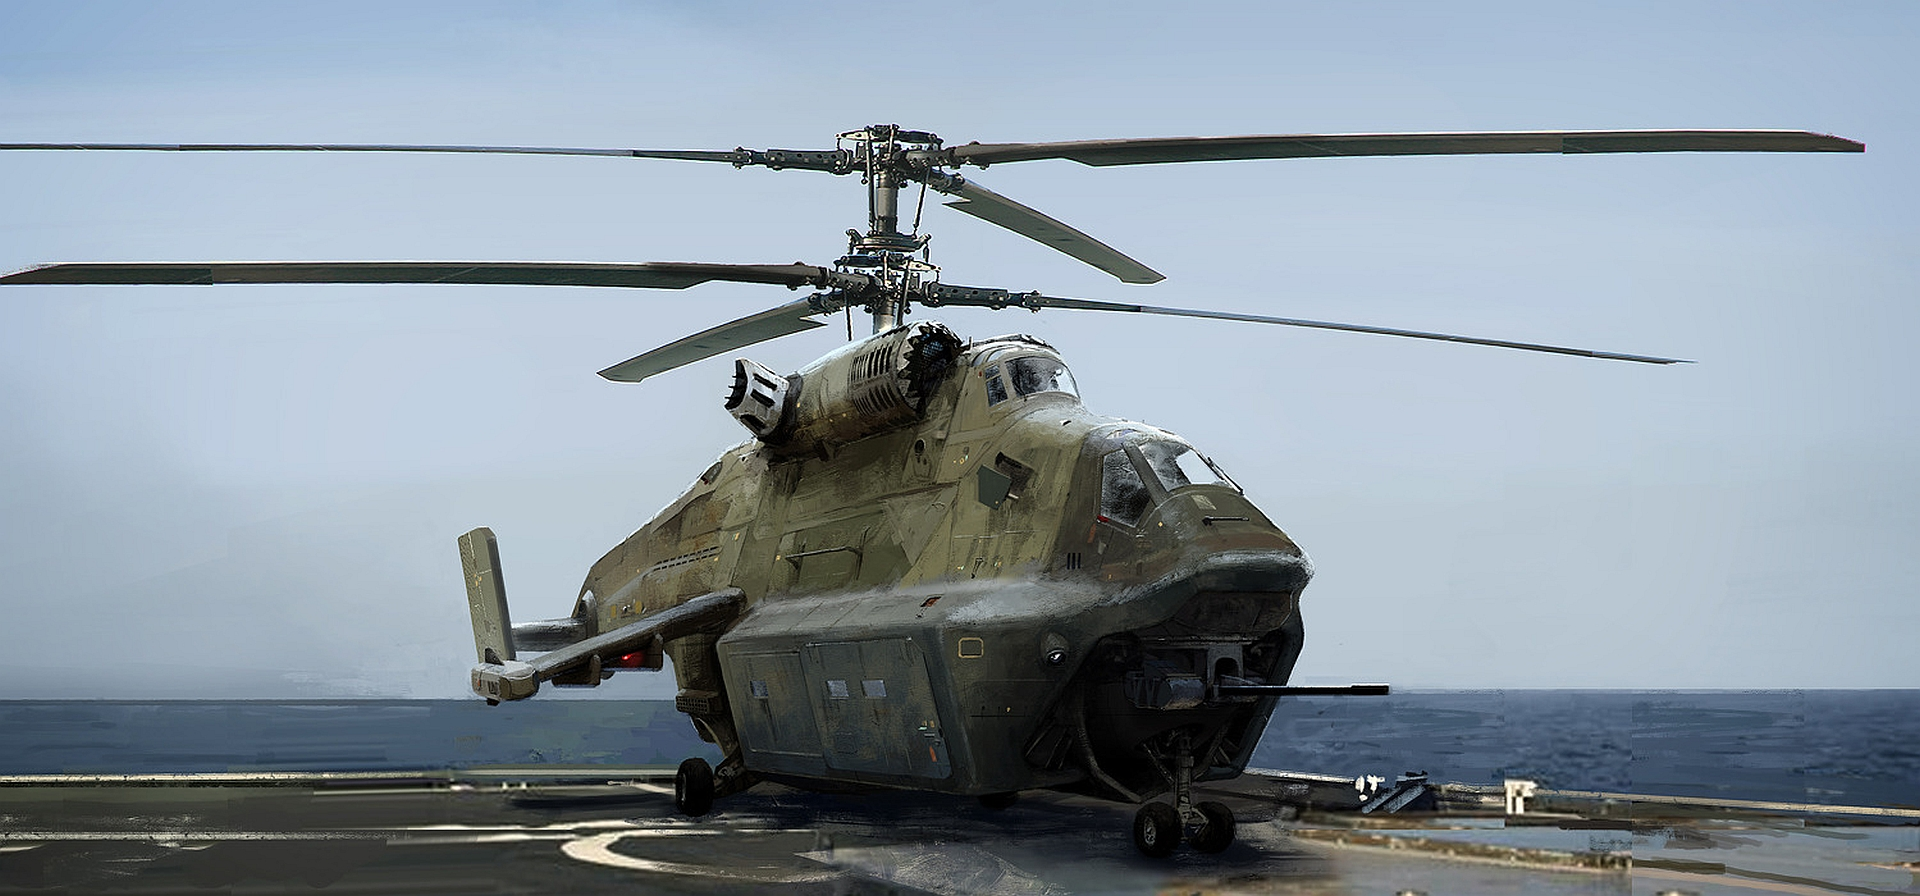 Helicopter Wallpaper and Background Image | 1920x896 | ID ...